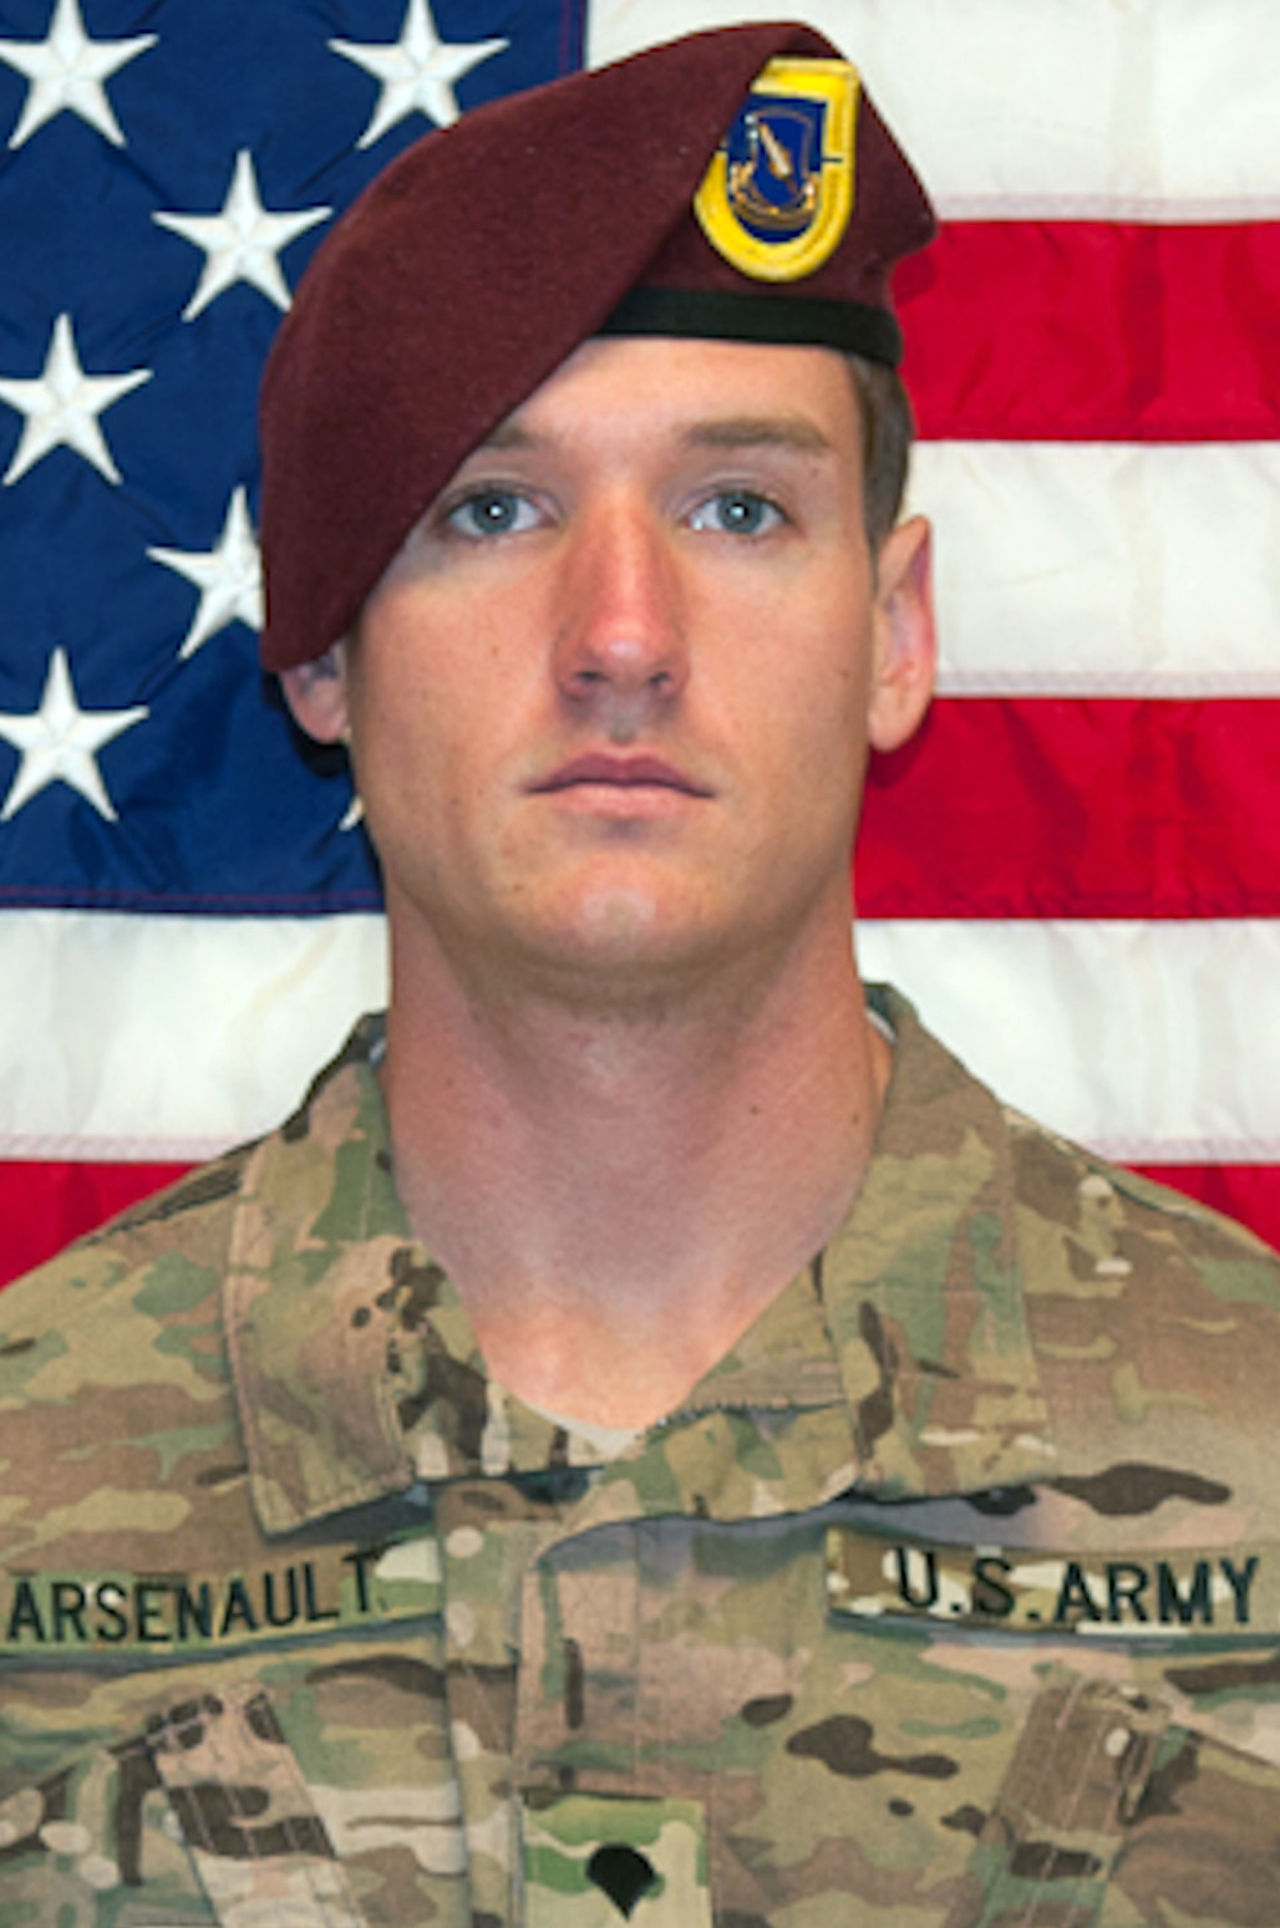 This photo provided by the U.S. Army shows Spc. Brian Arsenault. (Jonathan A. Shaw, U.S. Army/AP)